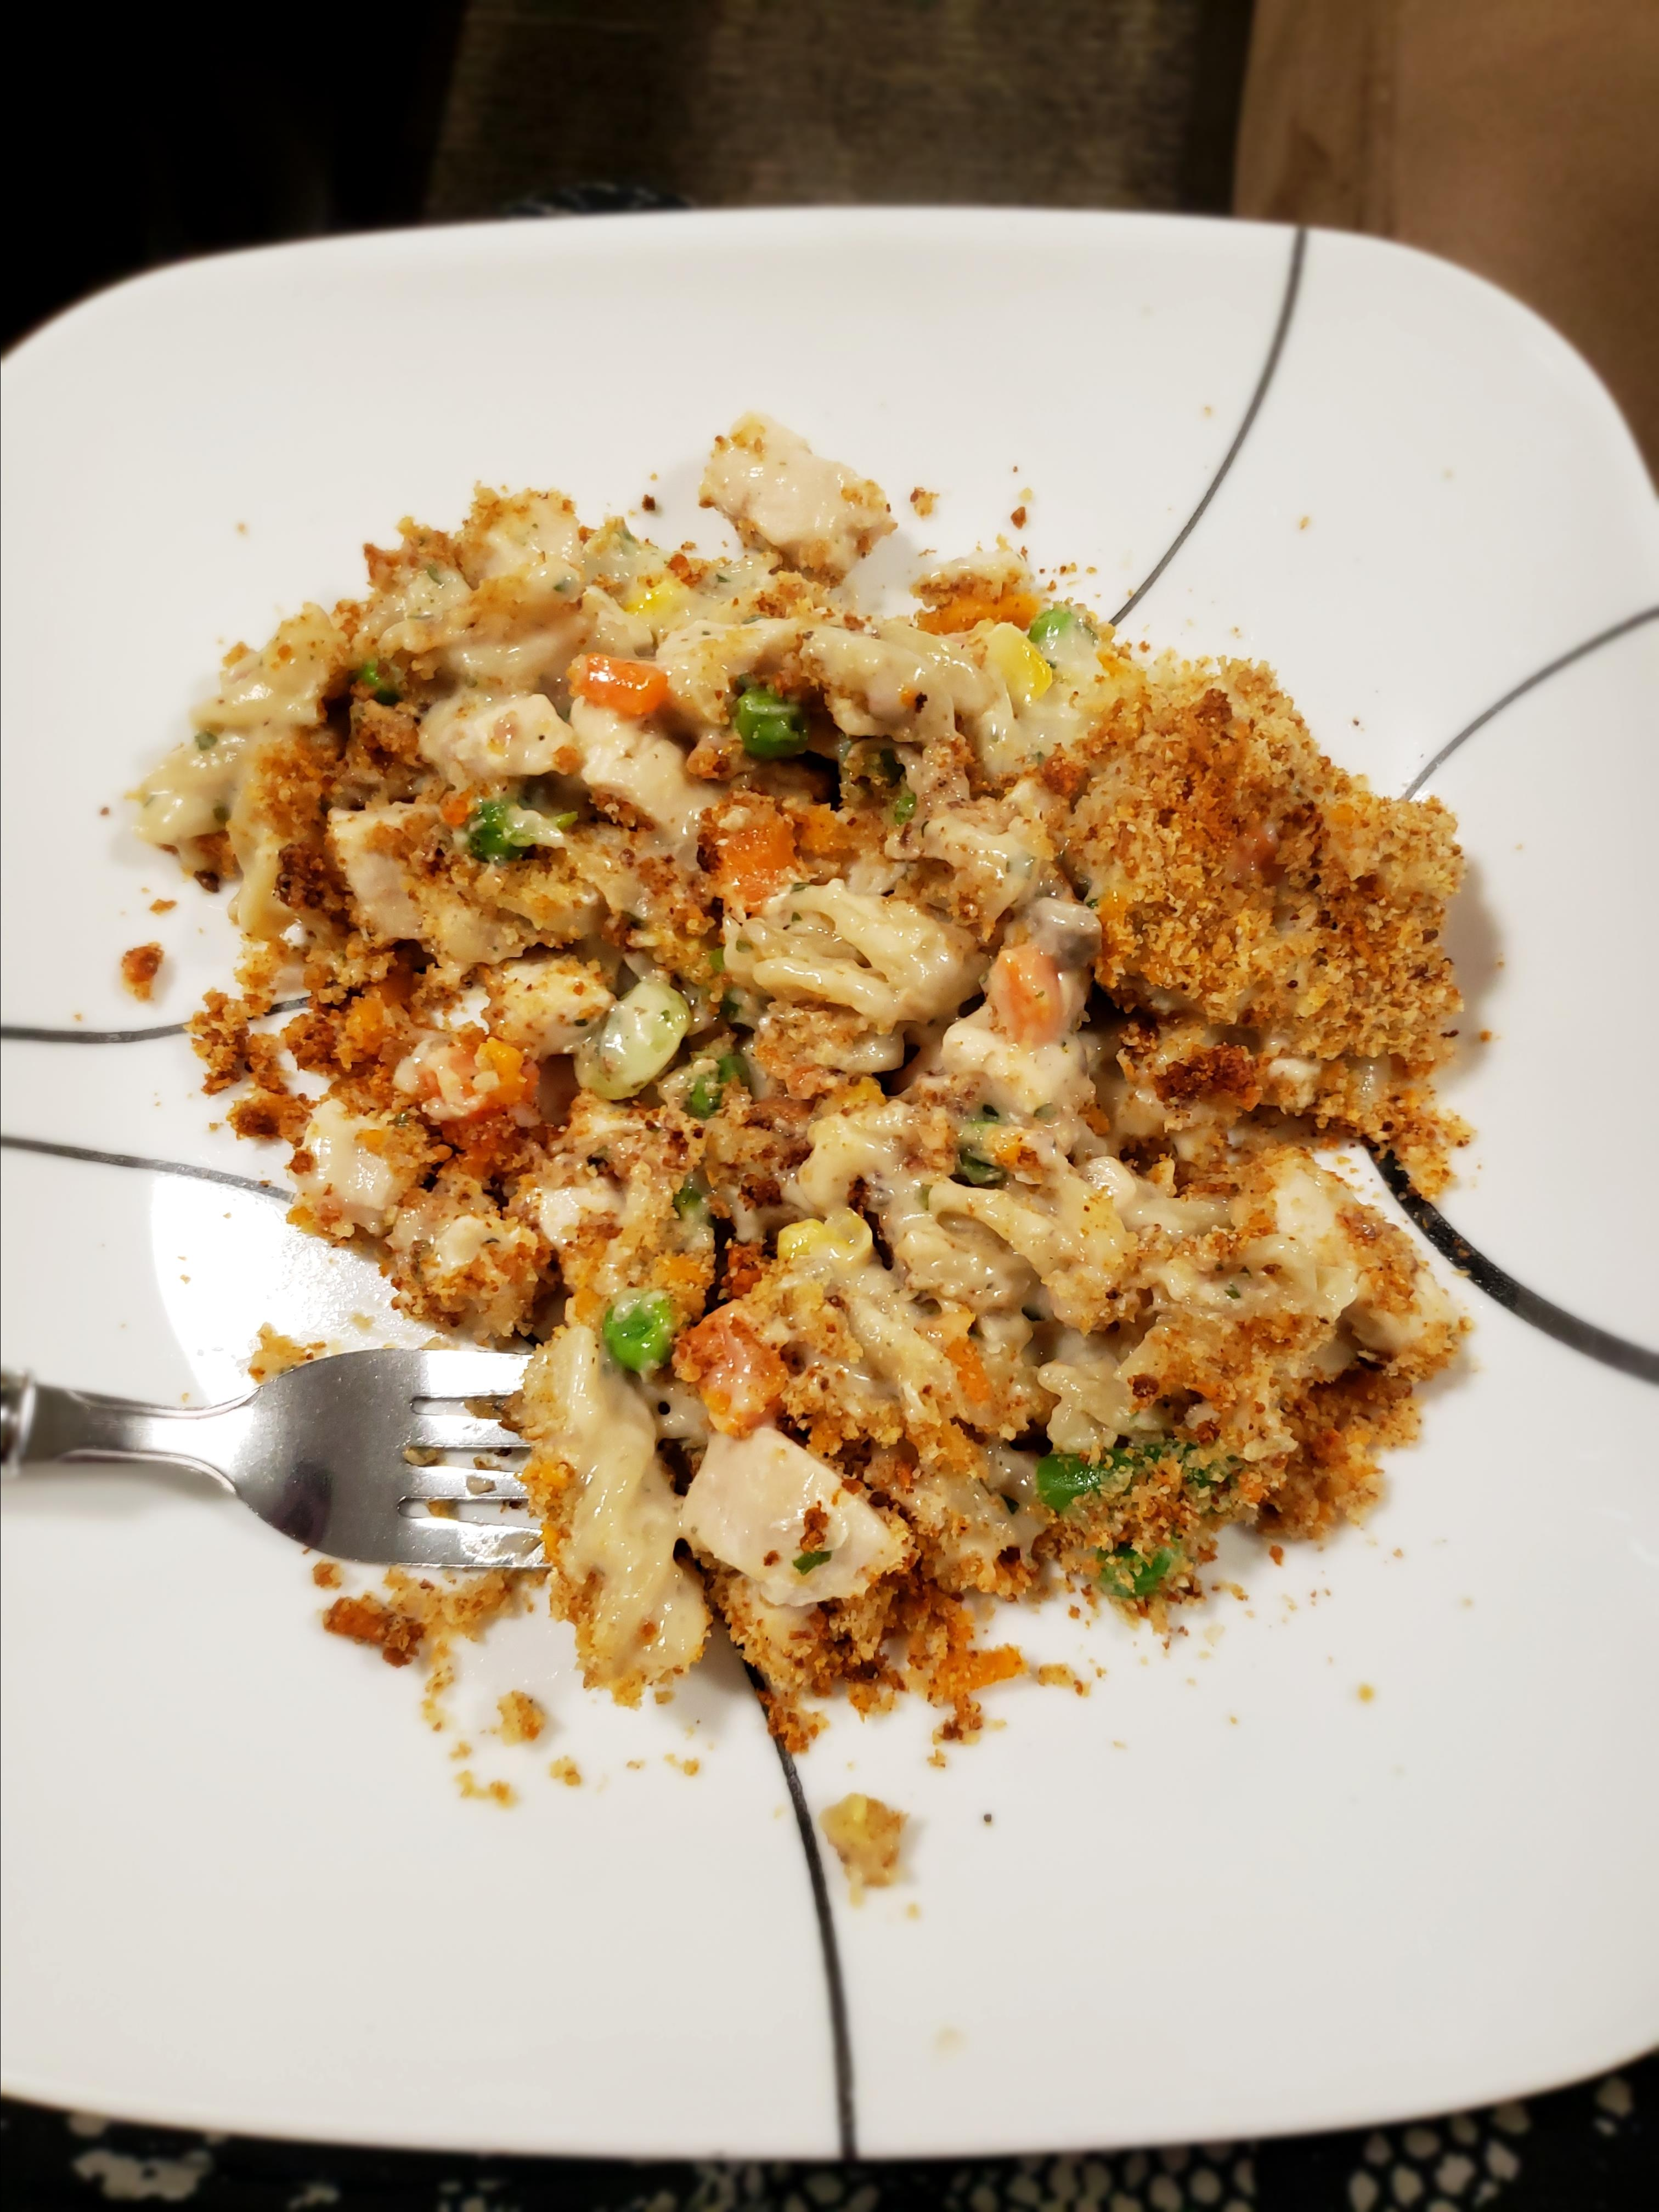 Chicken and Pasta Casserole with Mixed Vegetables Veronika Forrest